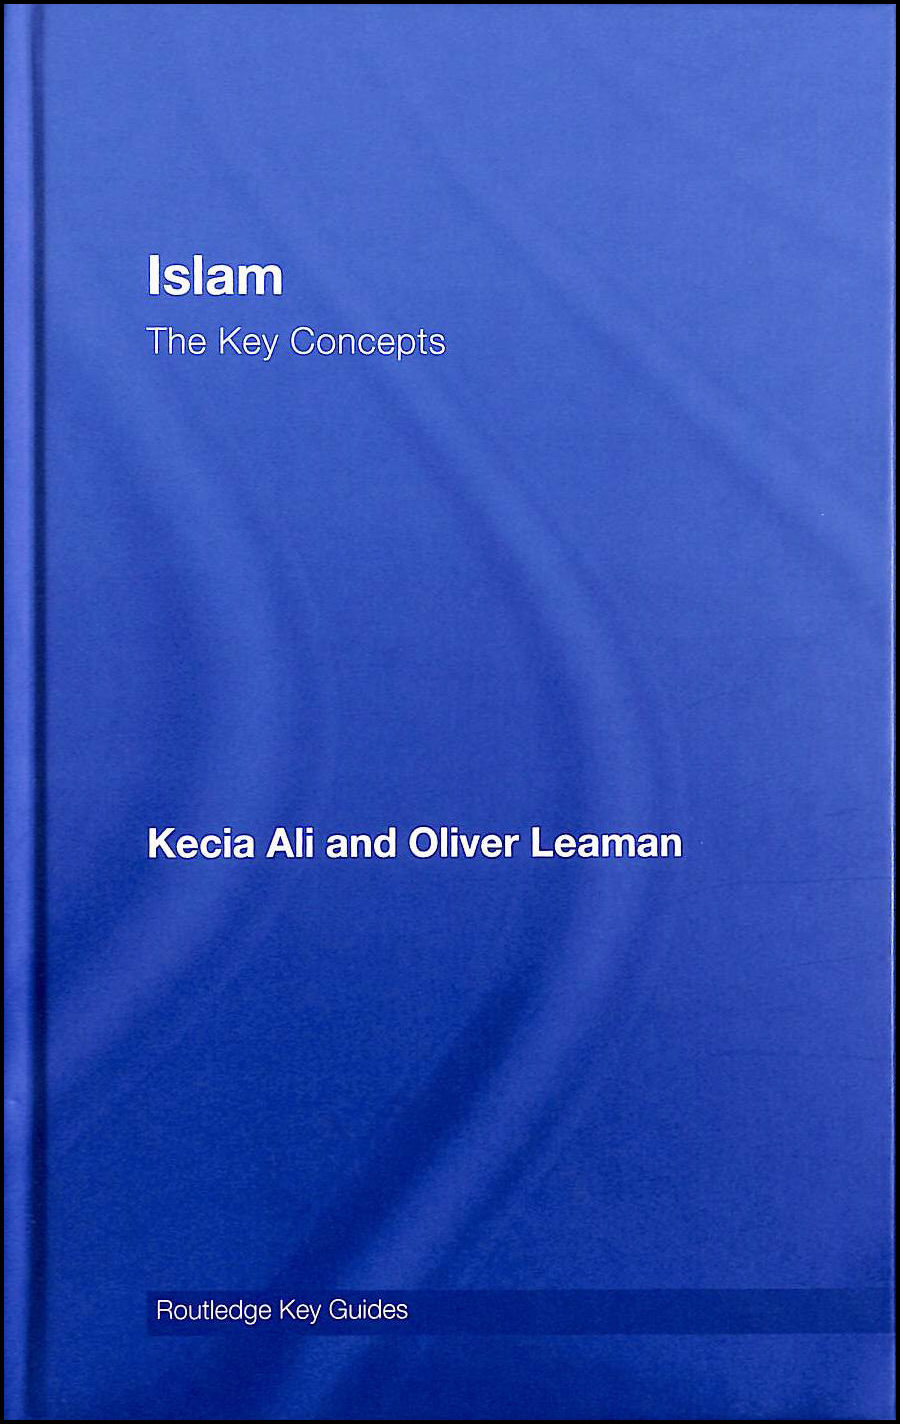 Islam: The Key Concepts (Routledge Key Guides), Ali, Kecia; Leaman, Oliver